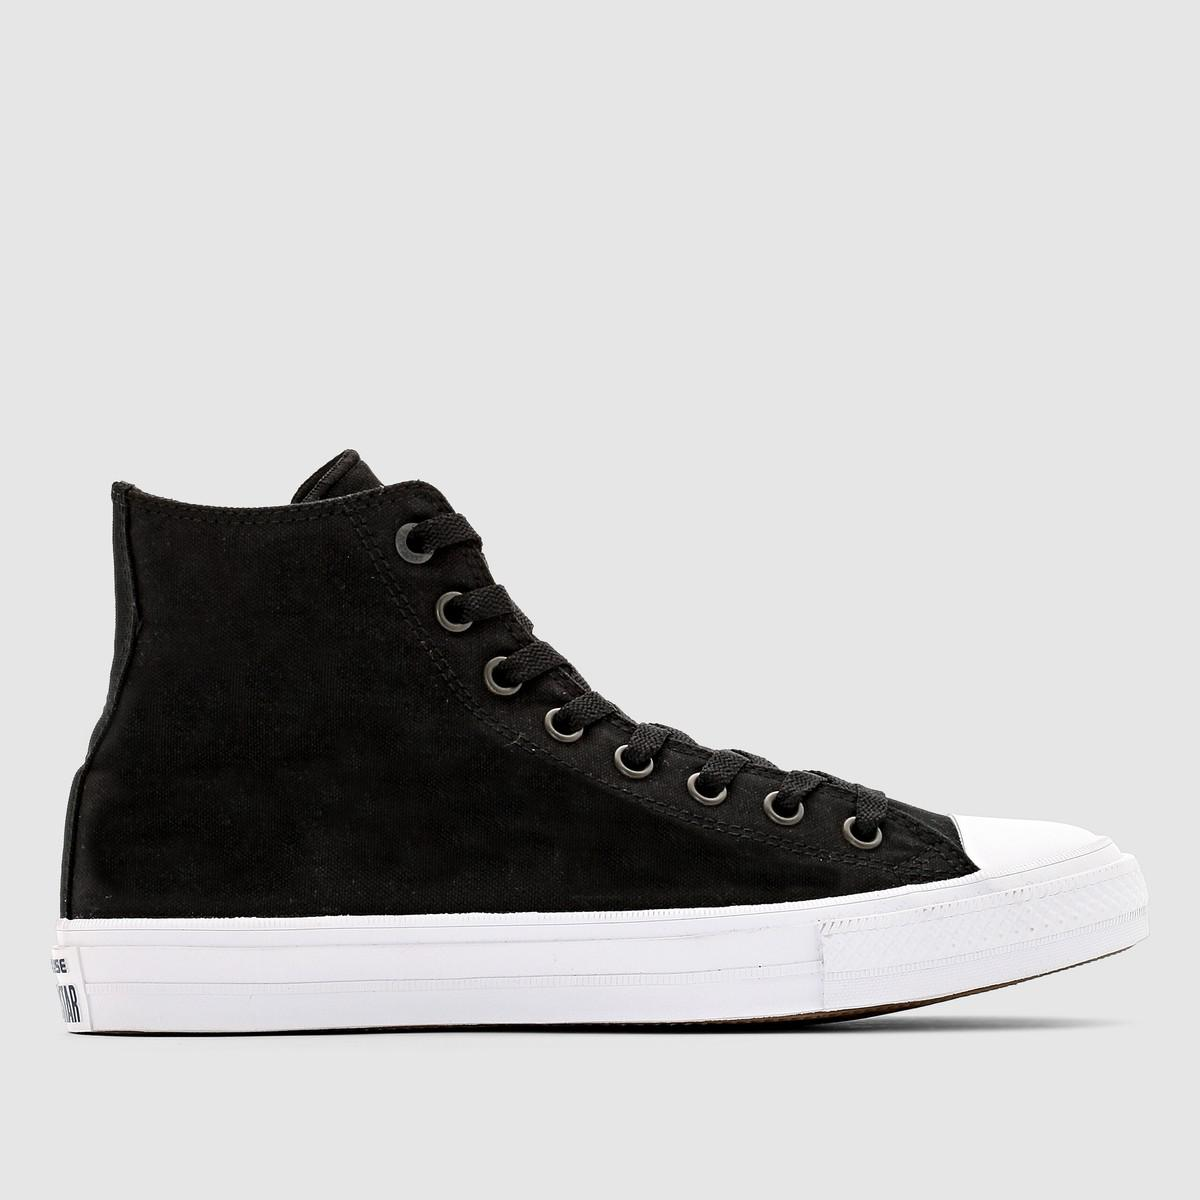 buy cheap 2014 unisex for sale cheap price from china CONVERSE Ctas II High Top Trainers top quality for sale professional cheap online extremely online k9Fjm5h